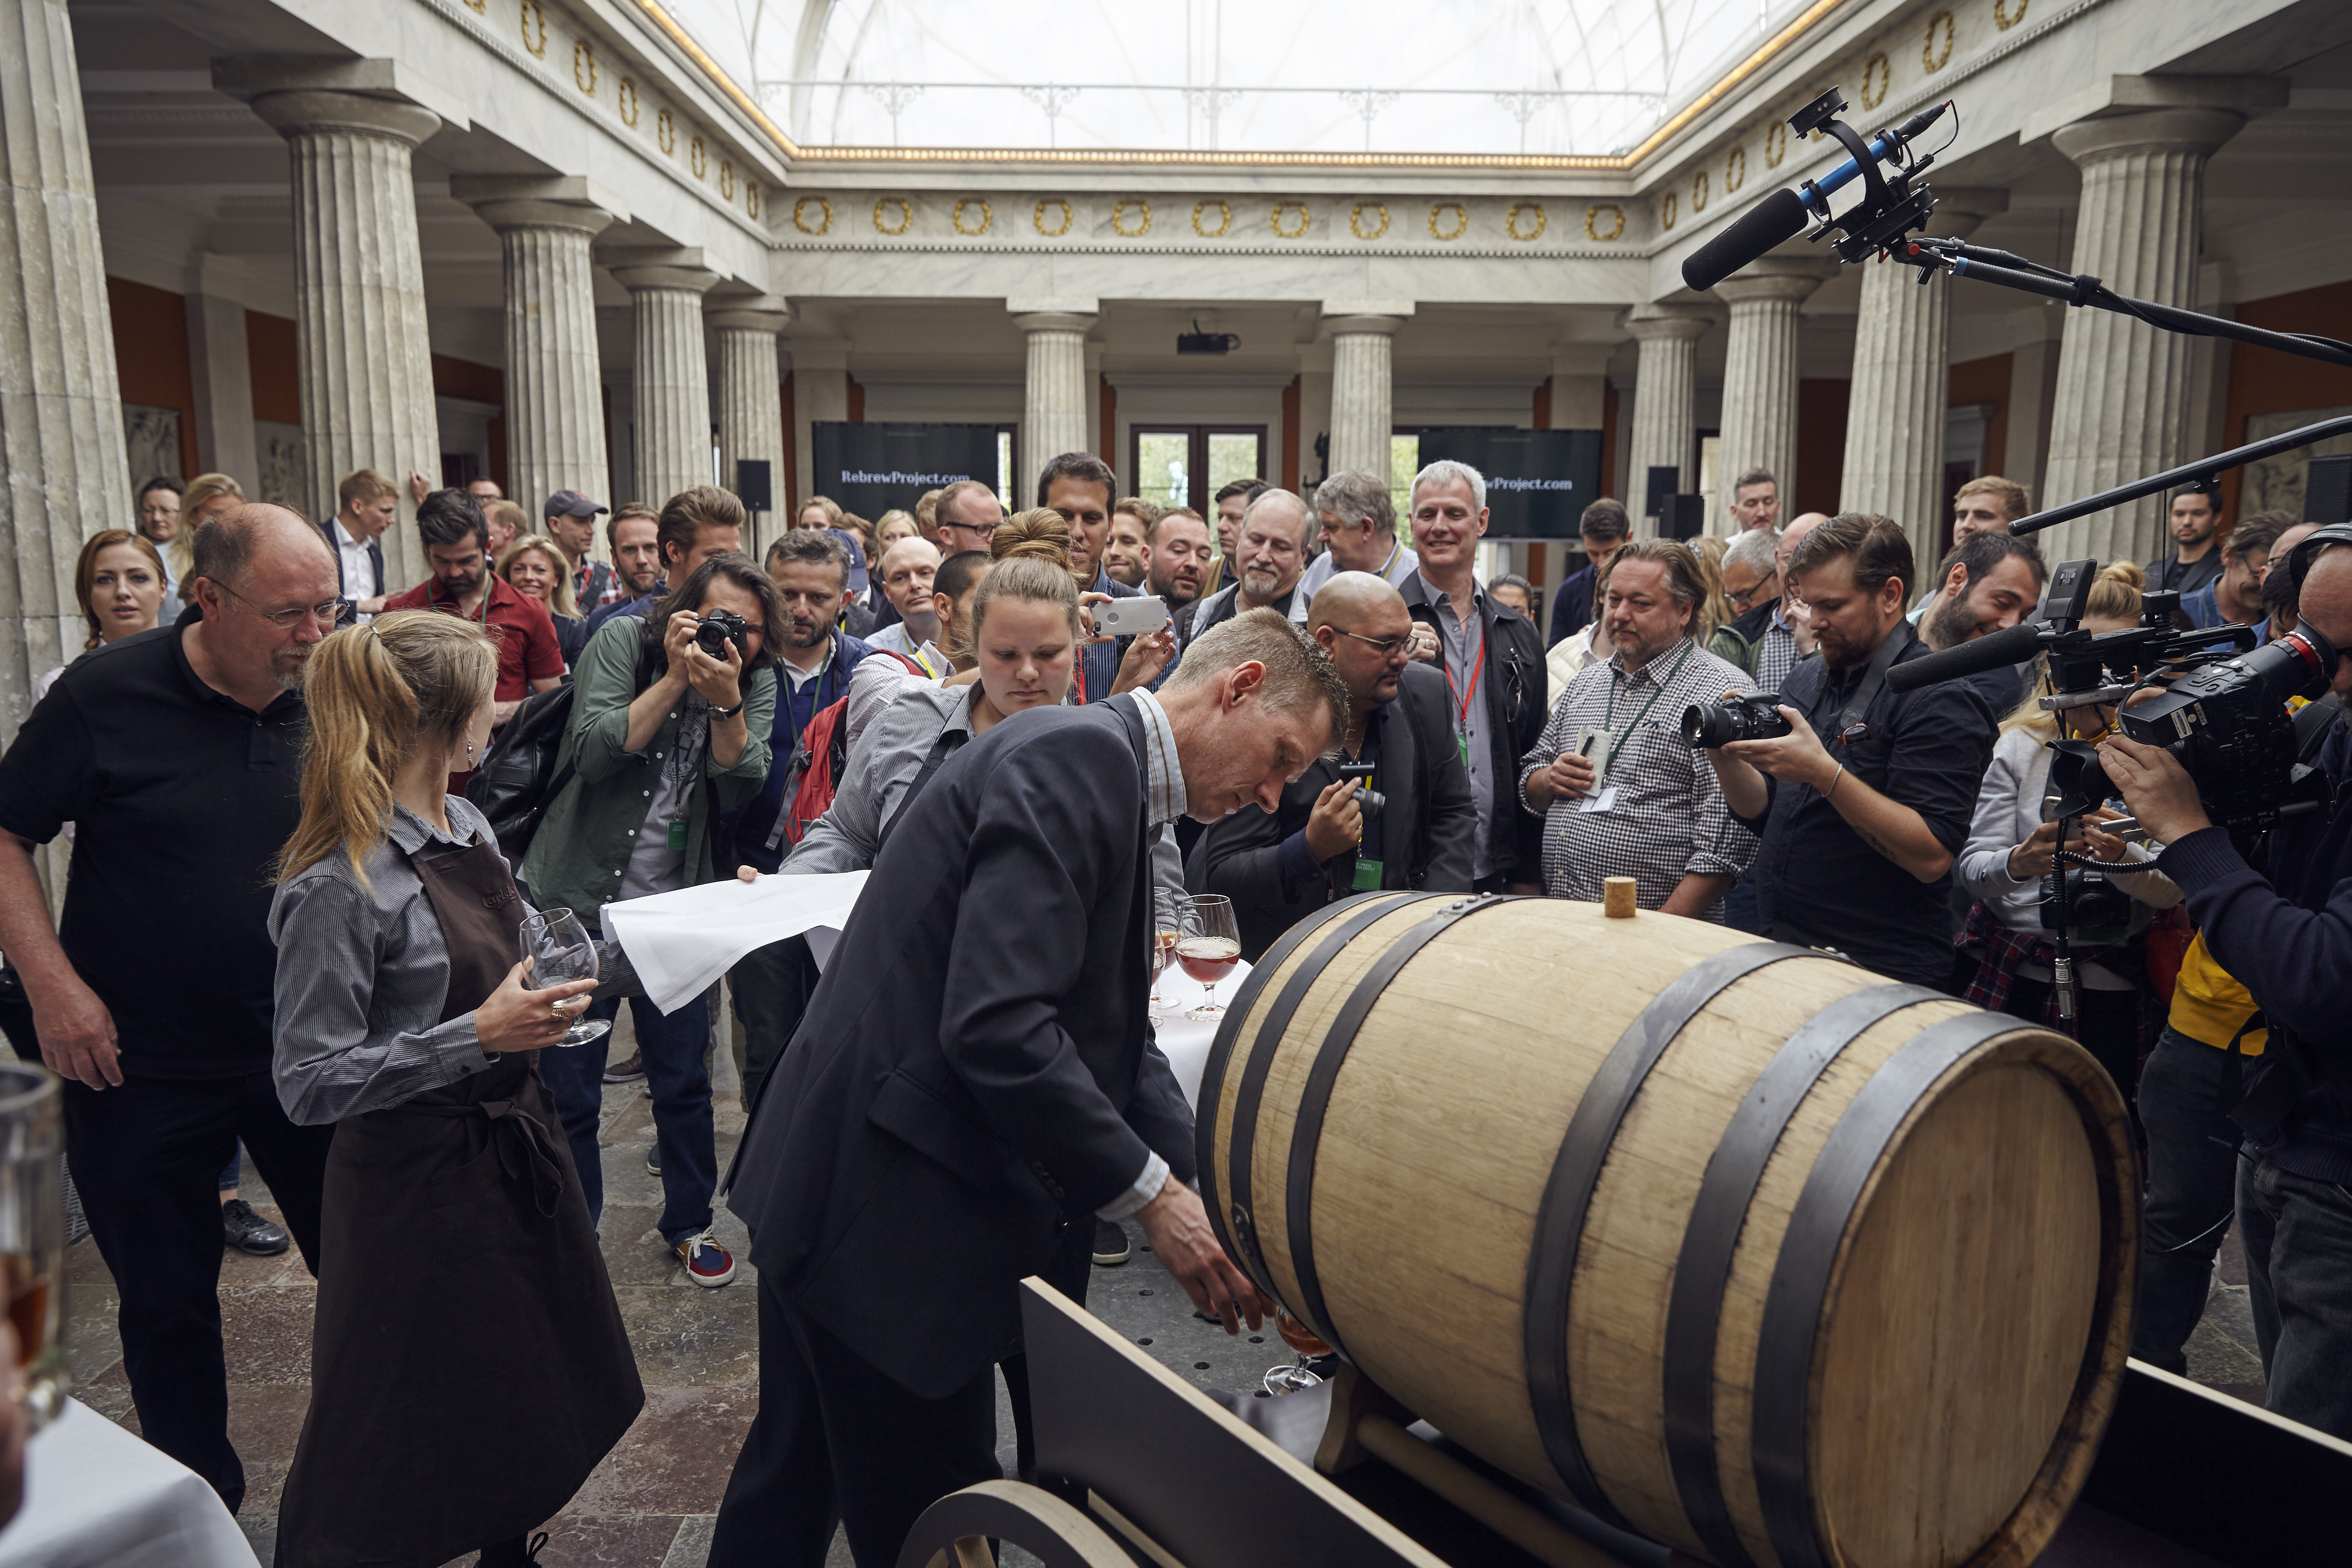 Tapping of the keg of the Carlsberg Rebrew Project in front of dignitaries and media. (image courtesy of Carlsberg)